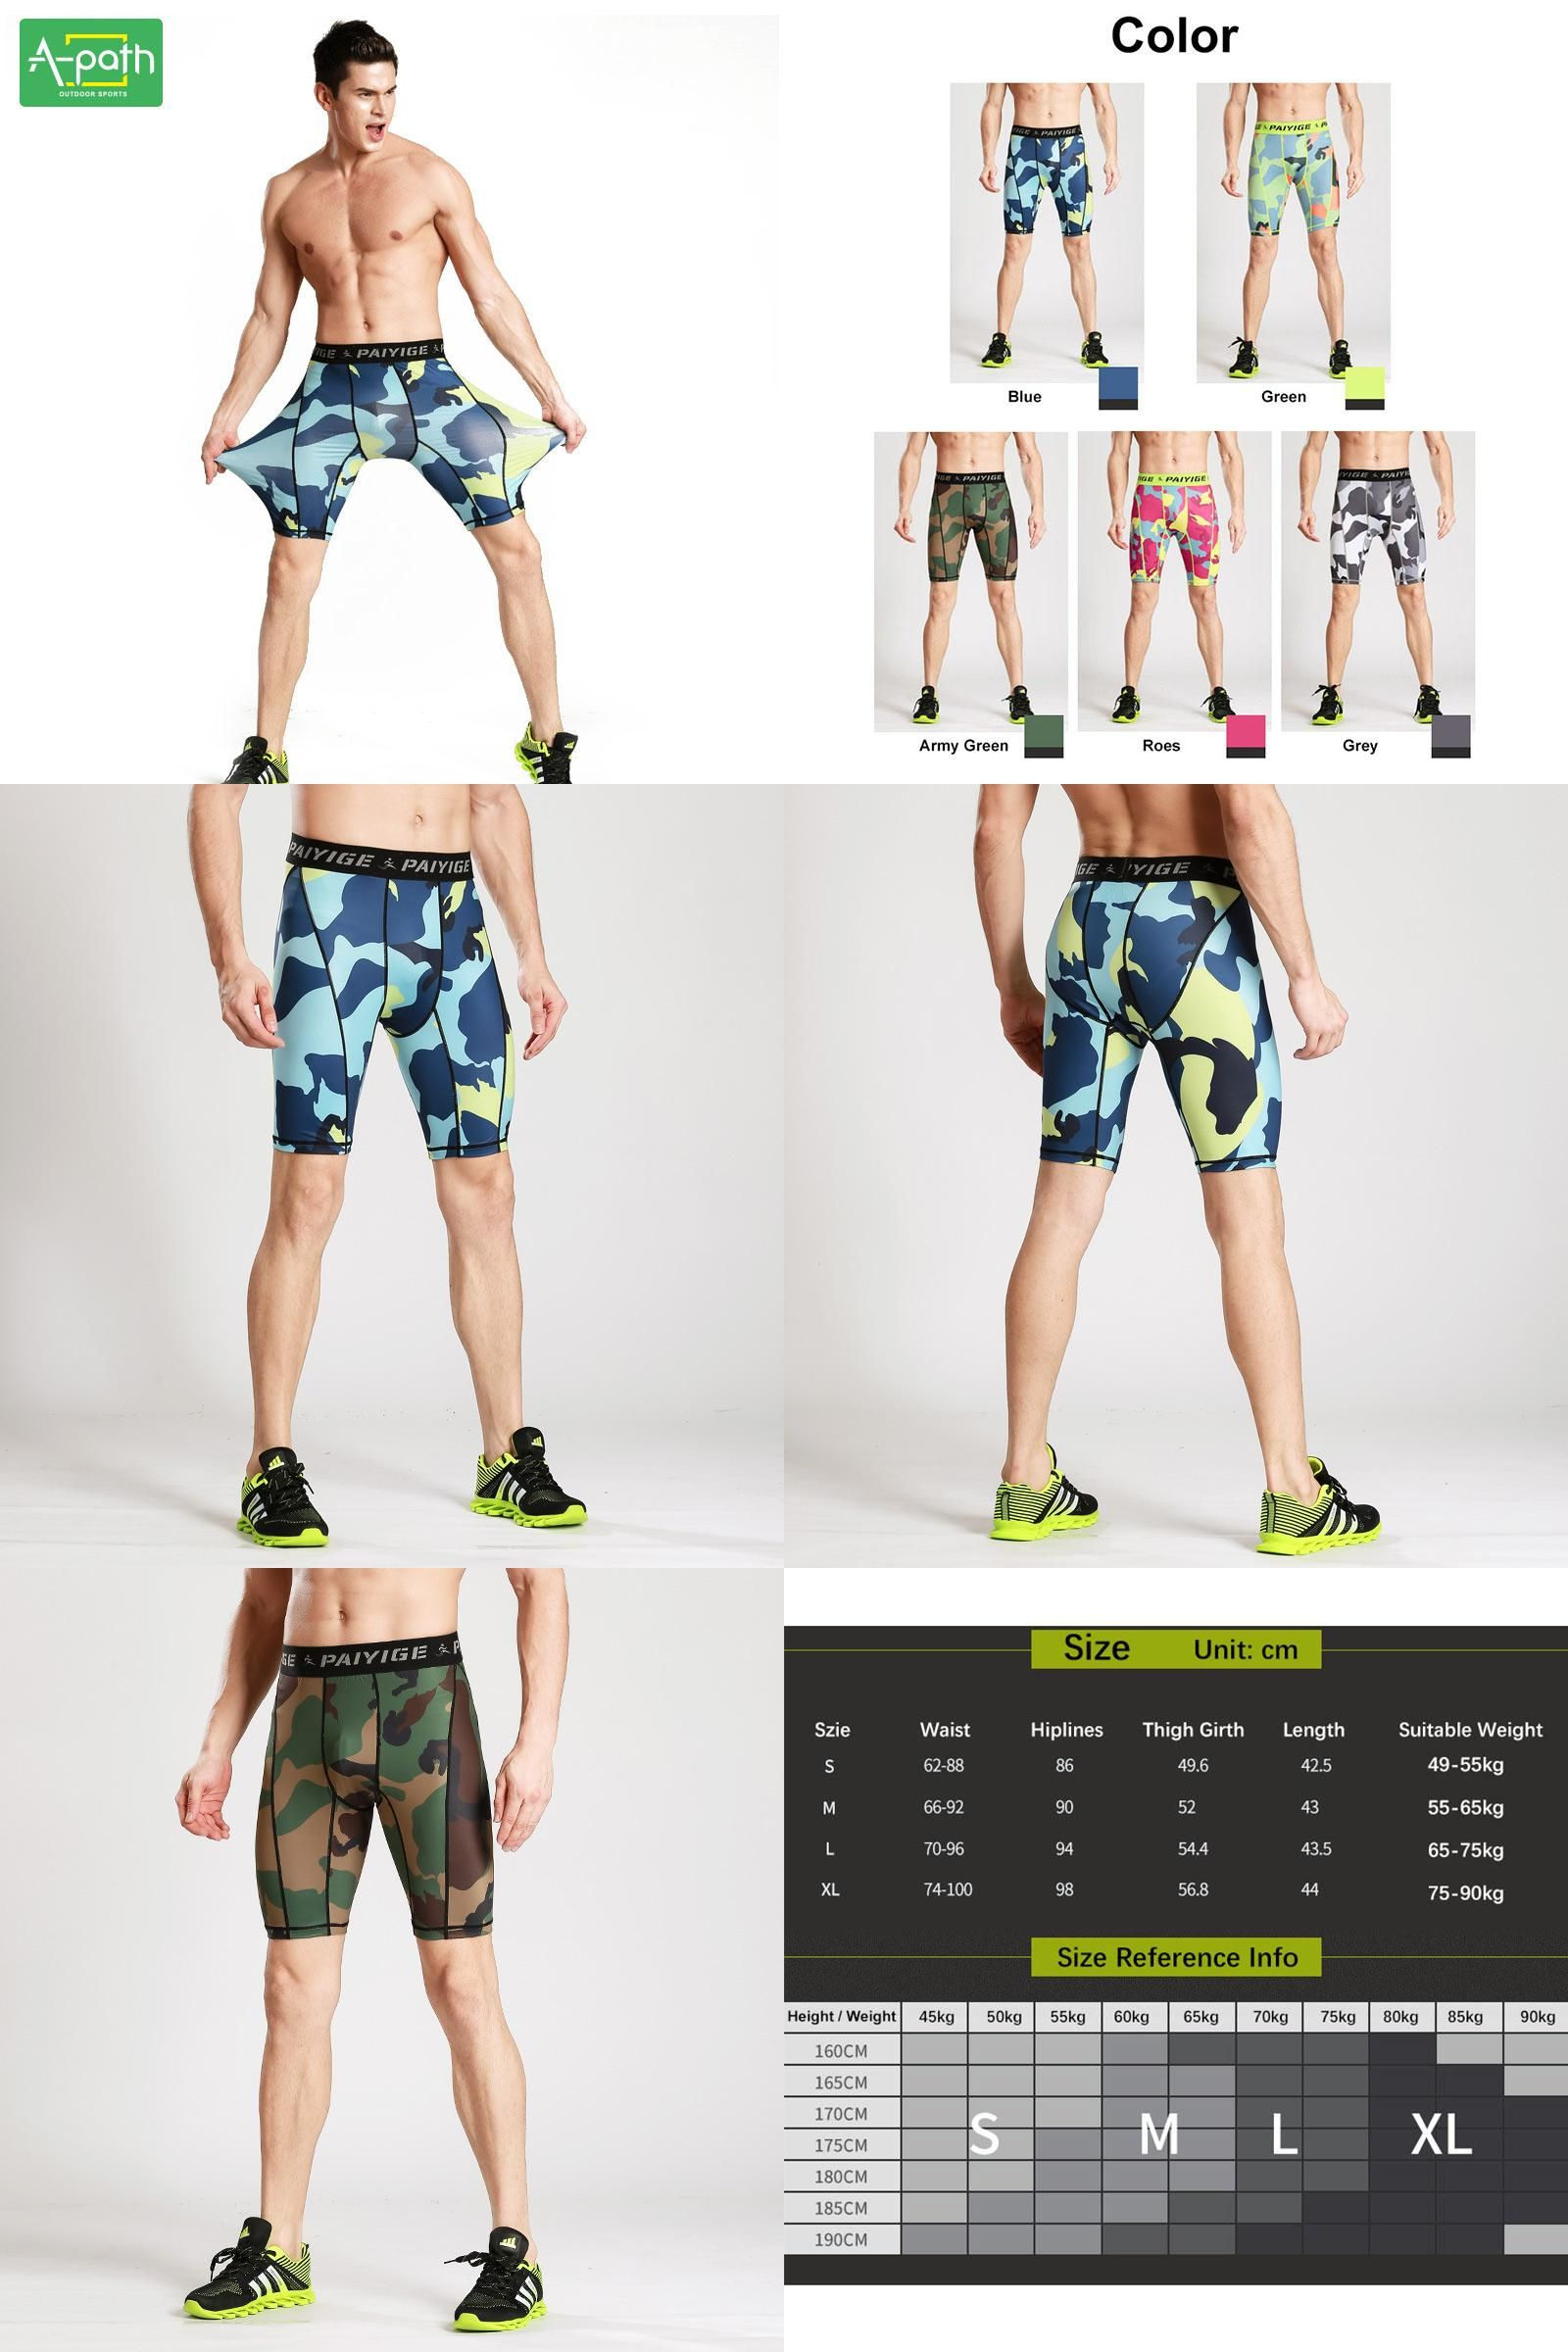 f068dabcd0a98 [Visit to Buy] New Summer Outdoors Quick-dry Male Camouflage Fitness  Running Tights Mens Sport Leggings Shorts bodysuit #Advertisement